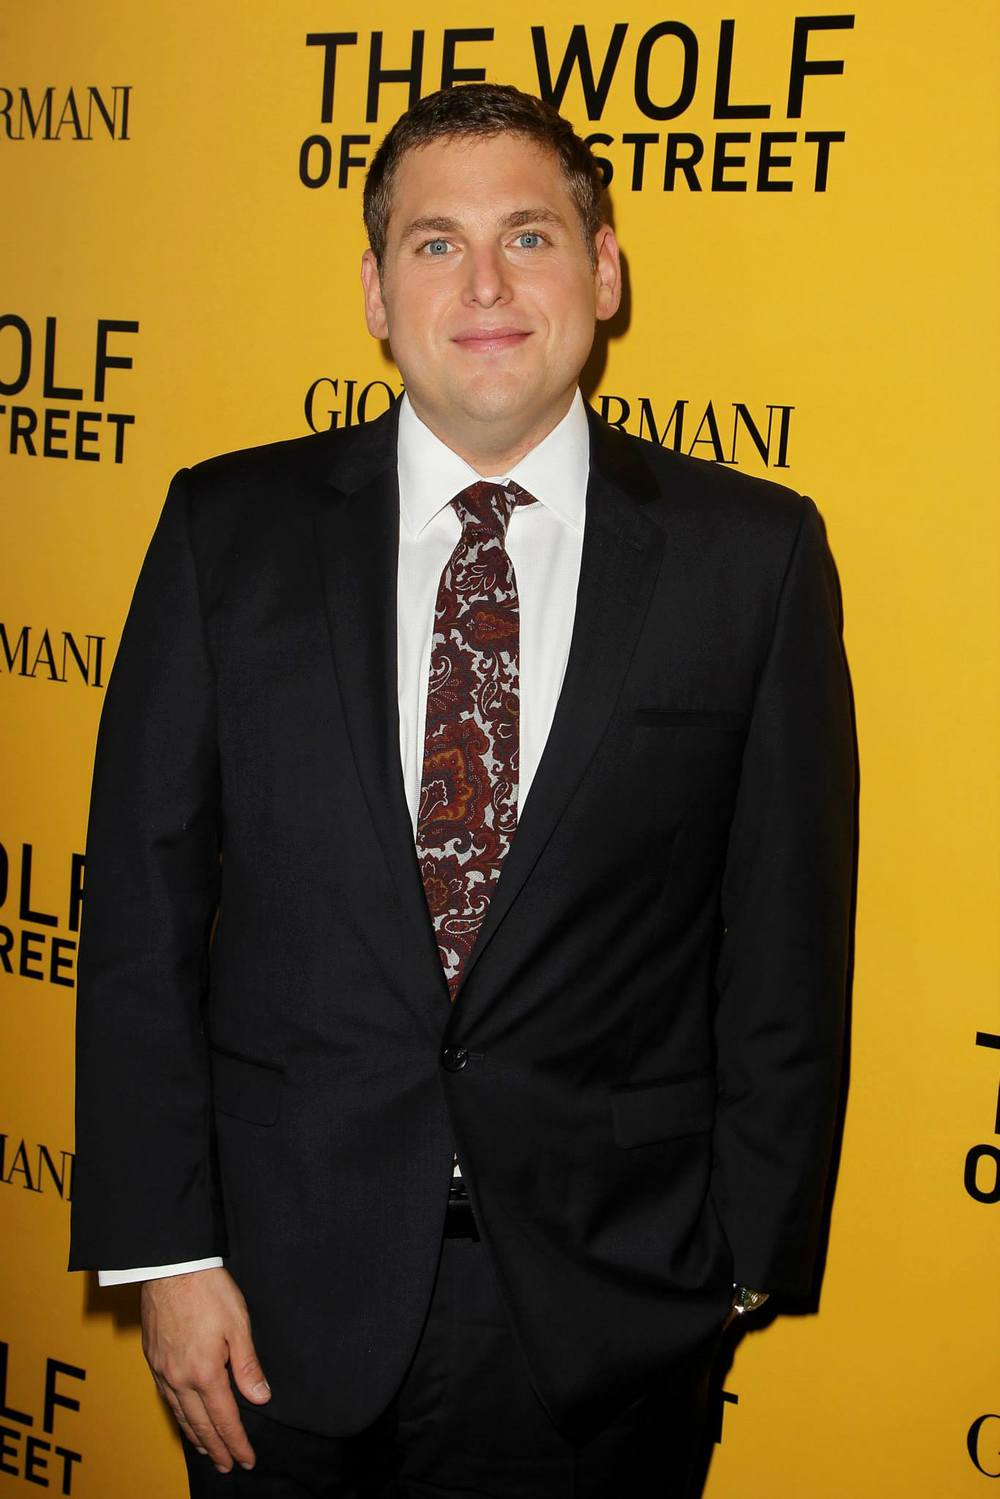 jonah-hill-at-the-new-york-city-premiere-of-the-wolf-of-wall-street-red-granite-pictures-red-granite-international.jpg